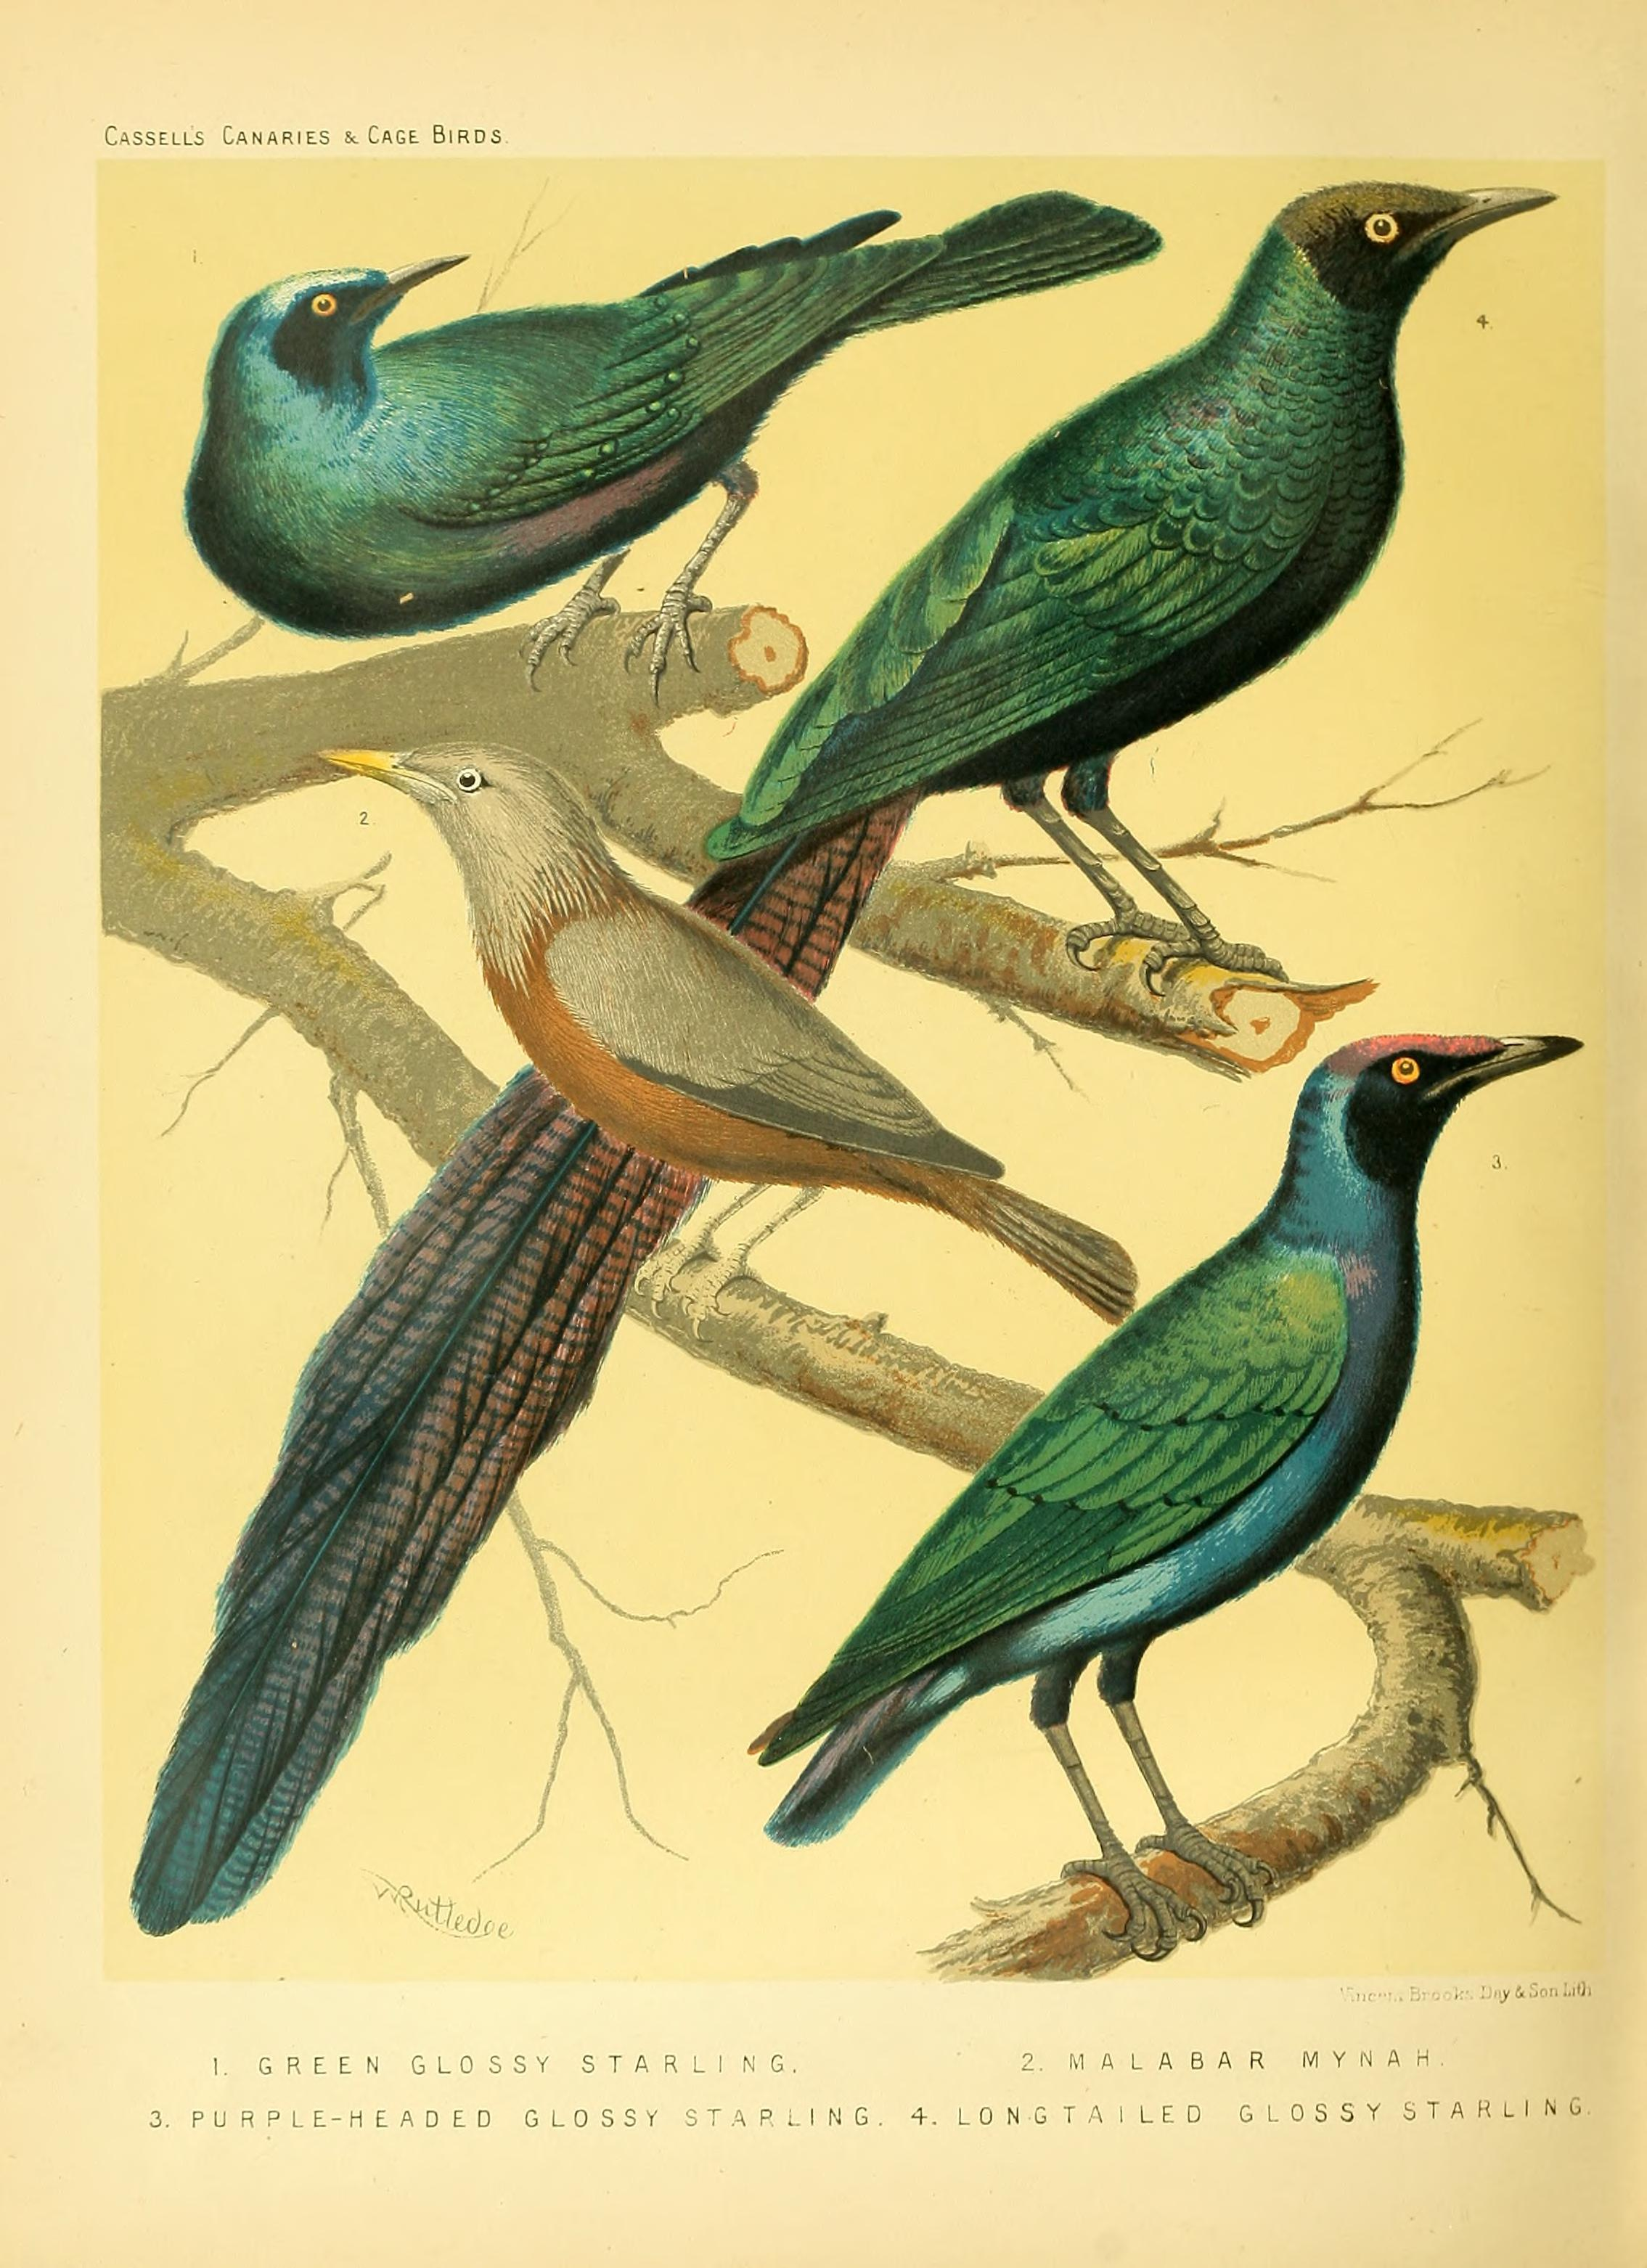 Long-tailed Glossy Starling svg #5, Download drawings